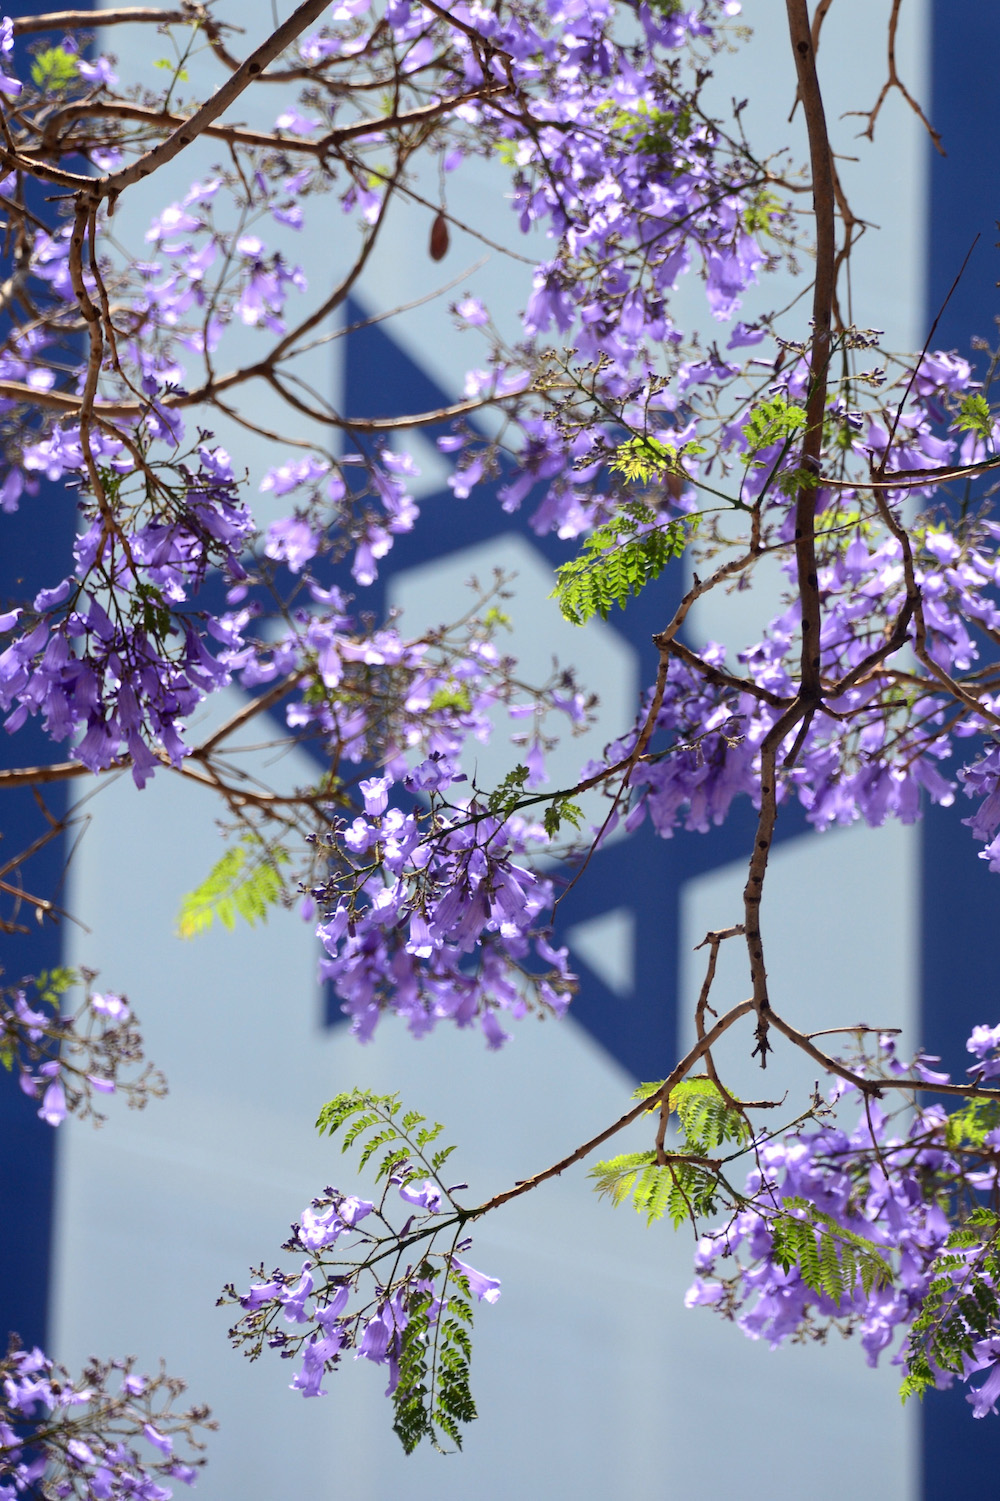 Jacaranda blossoms in front of Israel flag